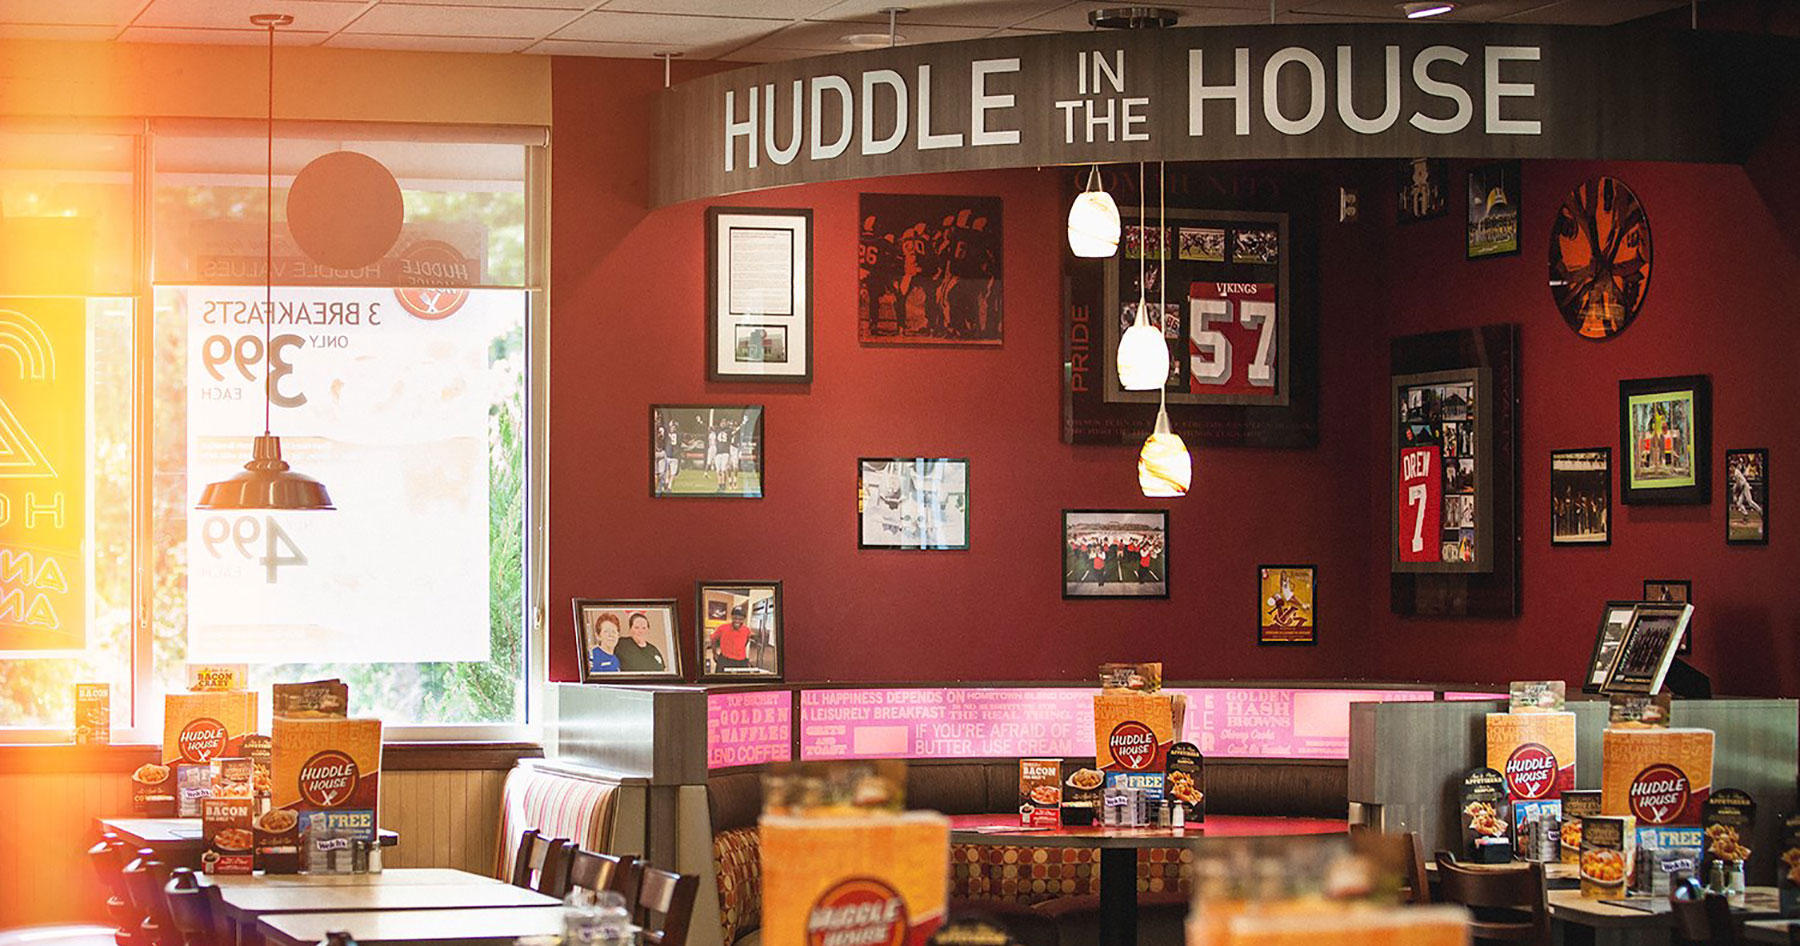 Elysium Management Buys Huddle House